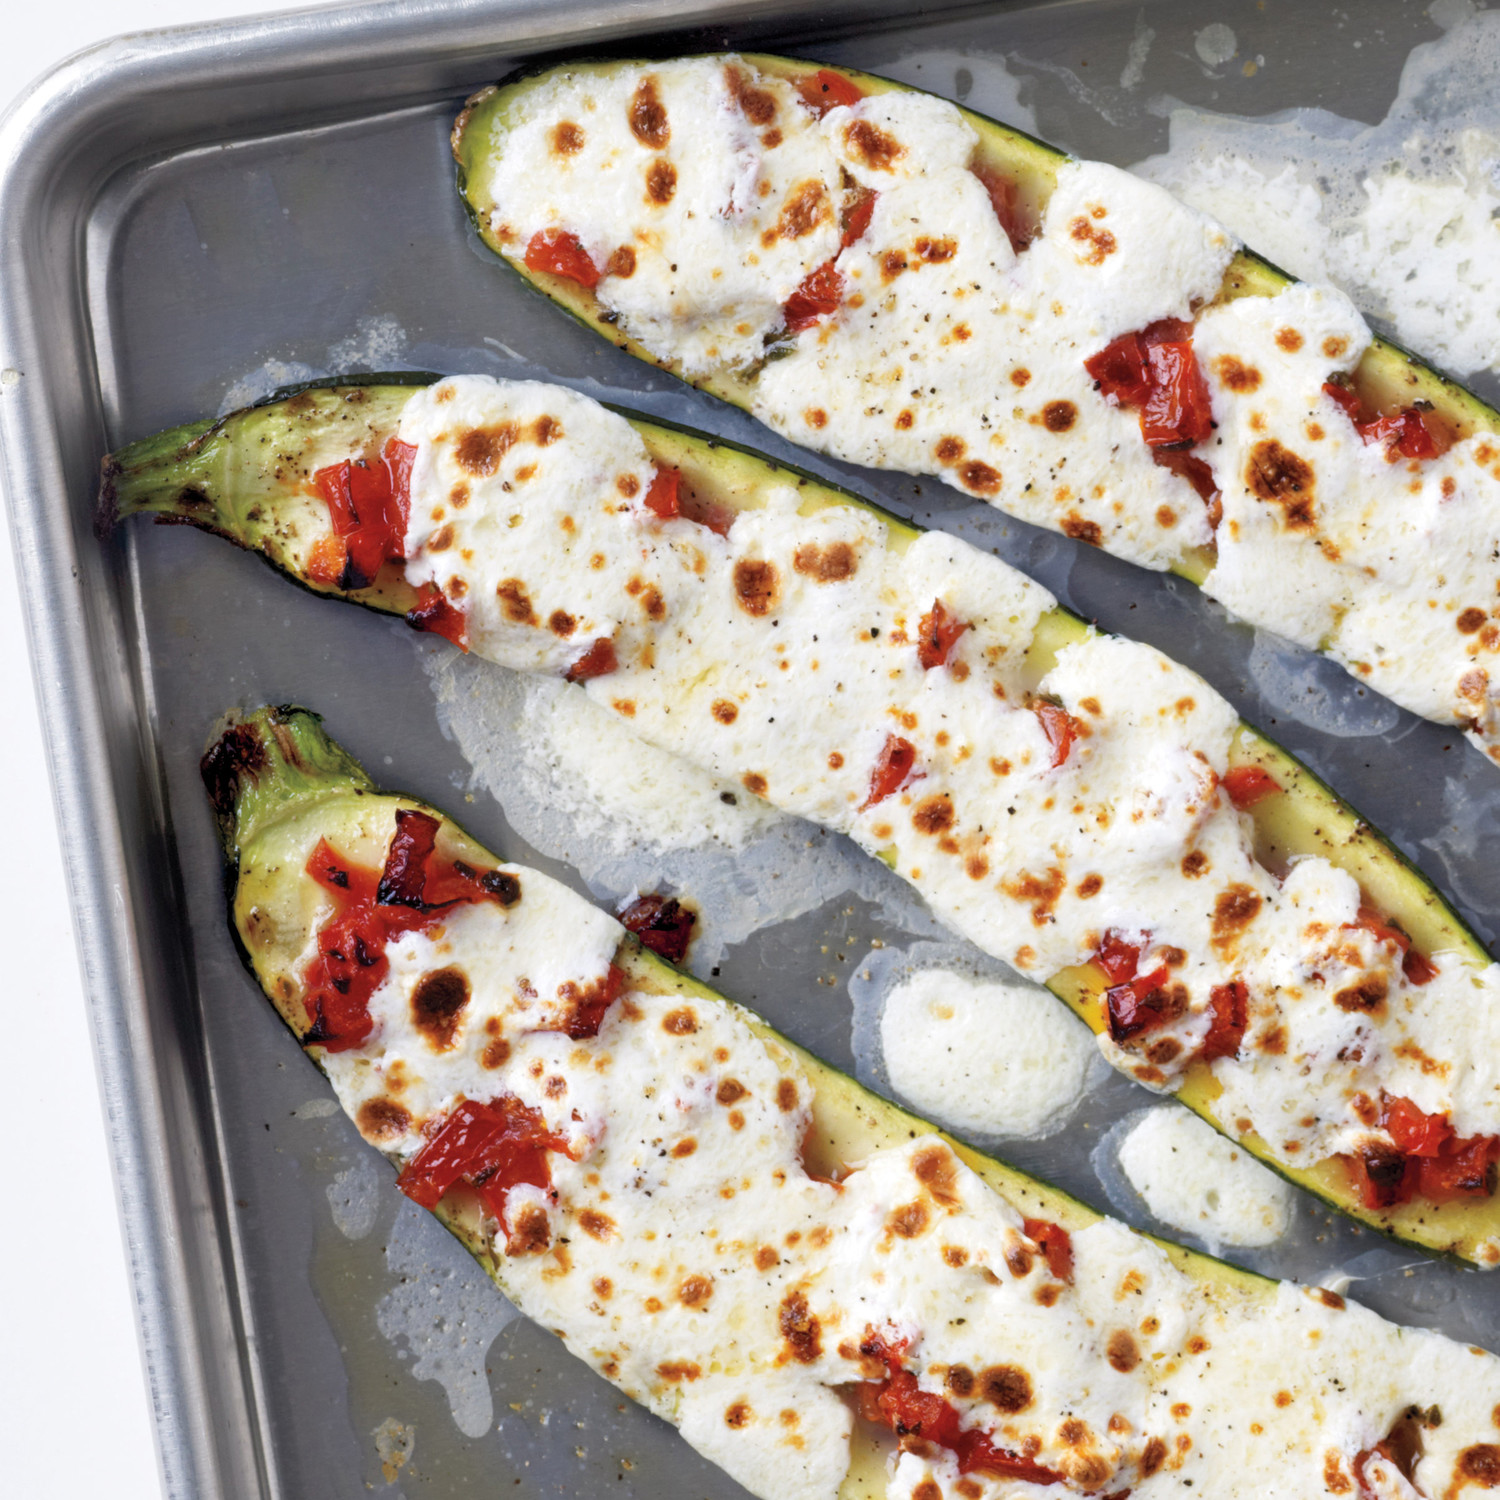 http://www.marthastewart.com/852393/stuffed-zucchini-tomatoes-and-mozzarella Stuffed Zucchini with Tomatoes and Mozzarella Servings: 4 Pinterest Facebook MORE Twitter Google+ Source: Everyday Food, July/August 2011 The Food Newsletter Great tips & recipes delivered to your inbox. Sign Me Up Ingredie…